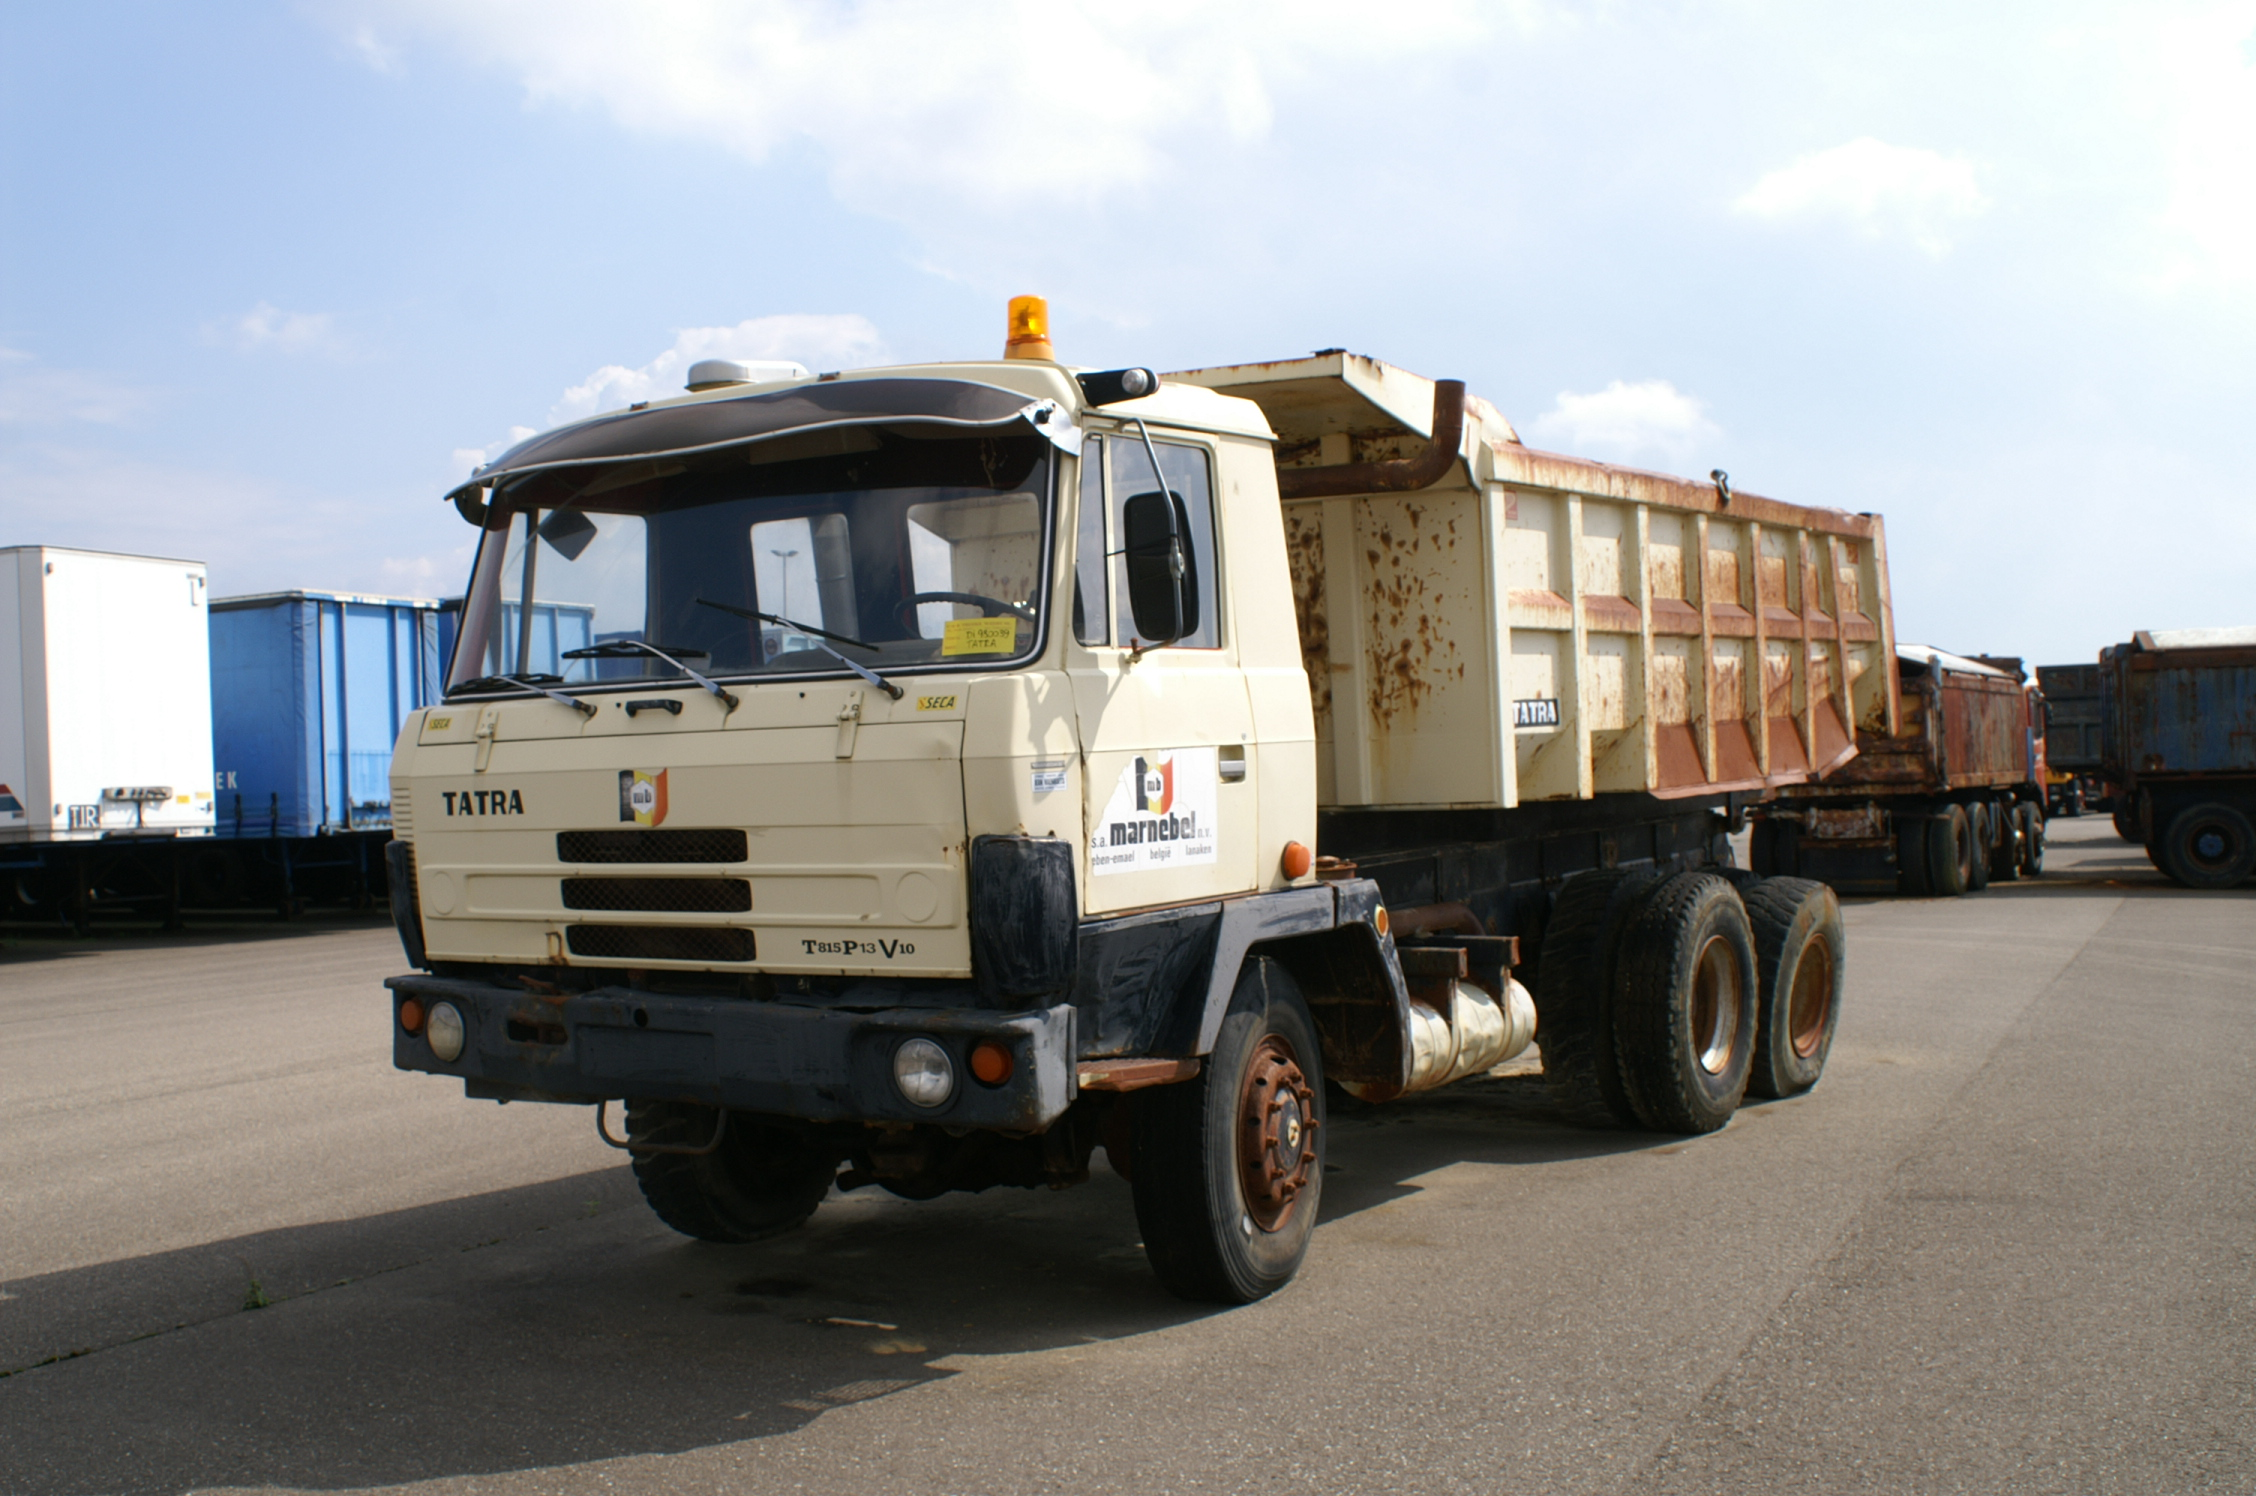 tatra t 815 p 13 marnebel cab Photo album by Mackf786